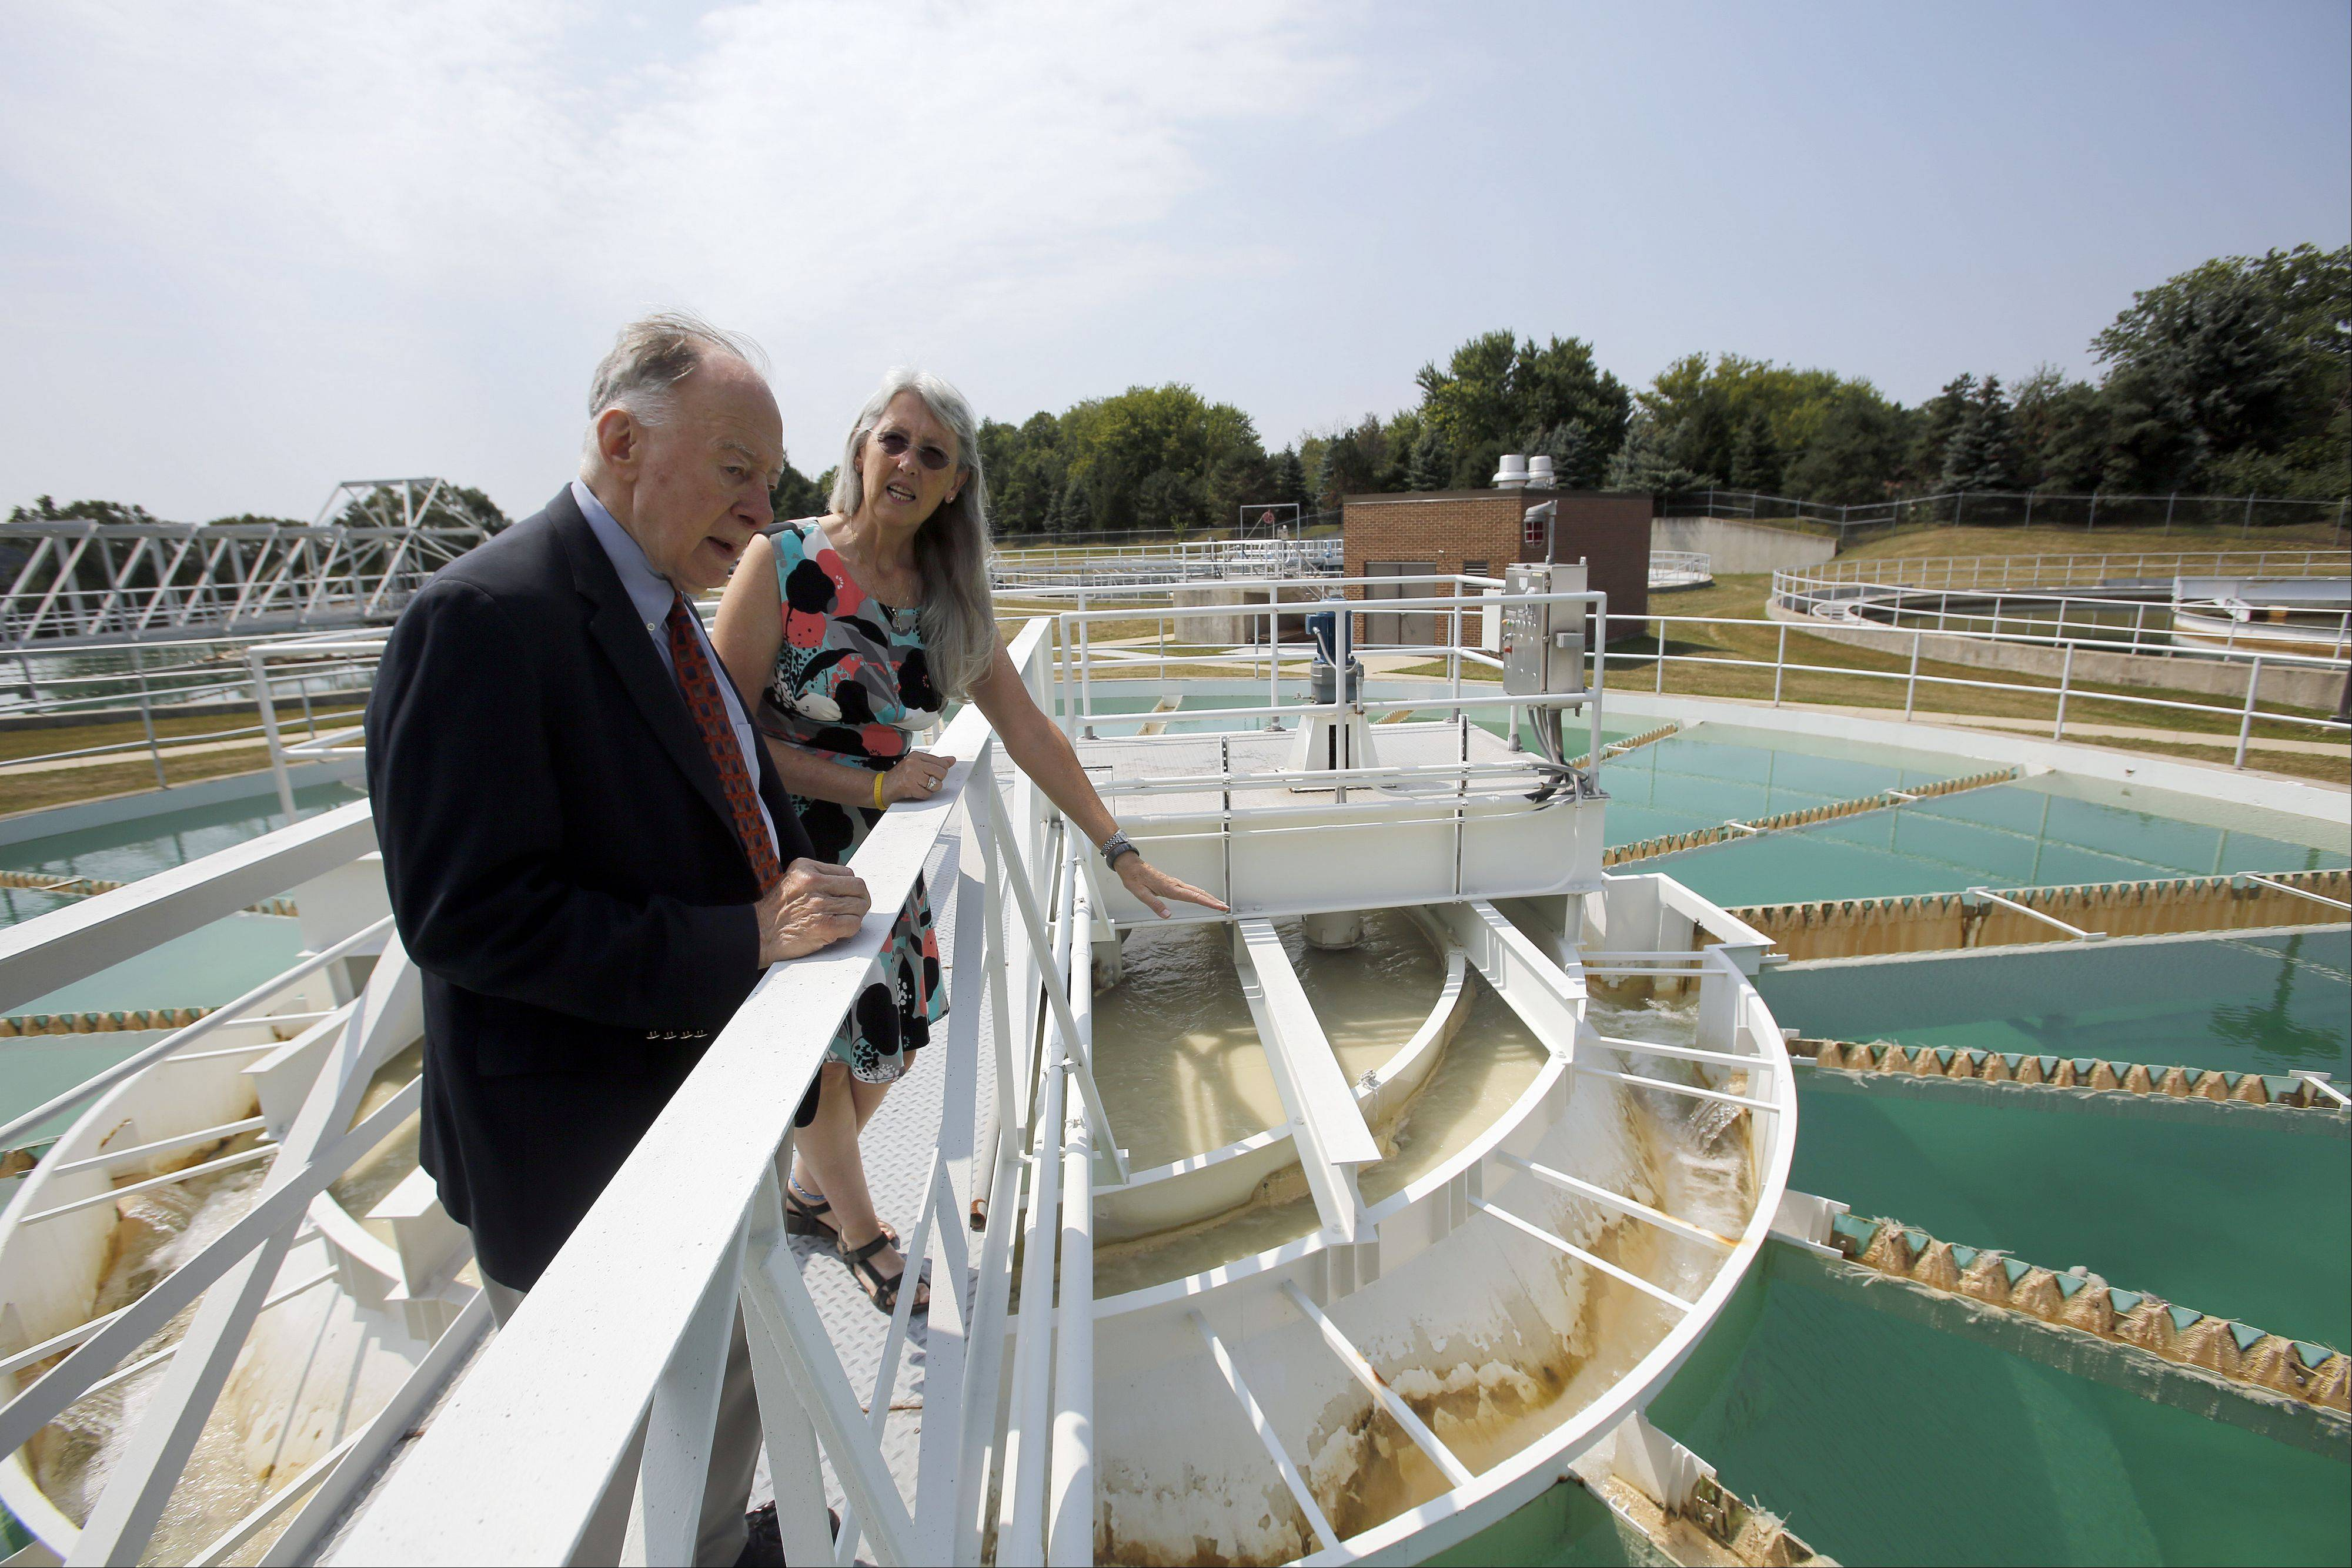 Elgin Water Director Kayla Jacobsen leads former Elgin City Manager Leo Nelson on a tour of the Riverside Drive Water Treatment Plant, which the city plans to name after Nelson. Nelson spearheaded the controversial idea of building the facility in the 1970s.